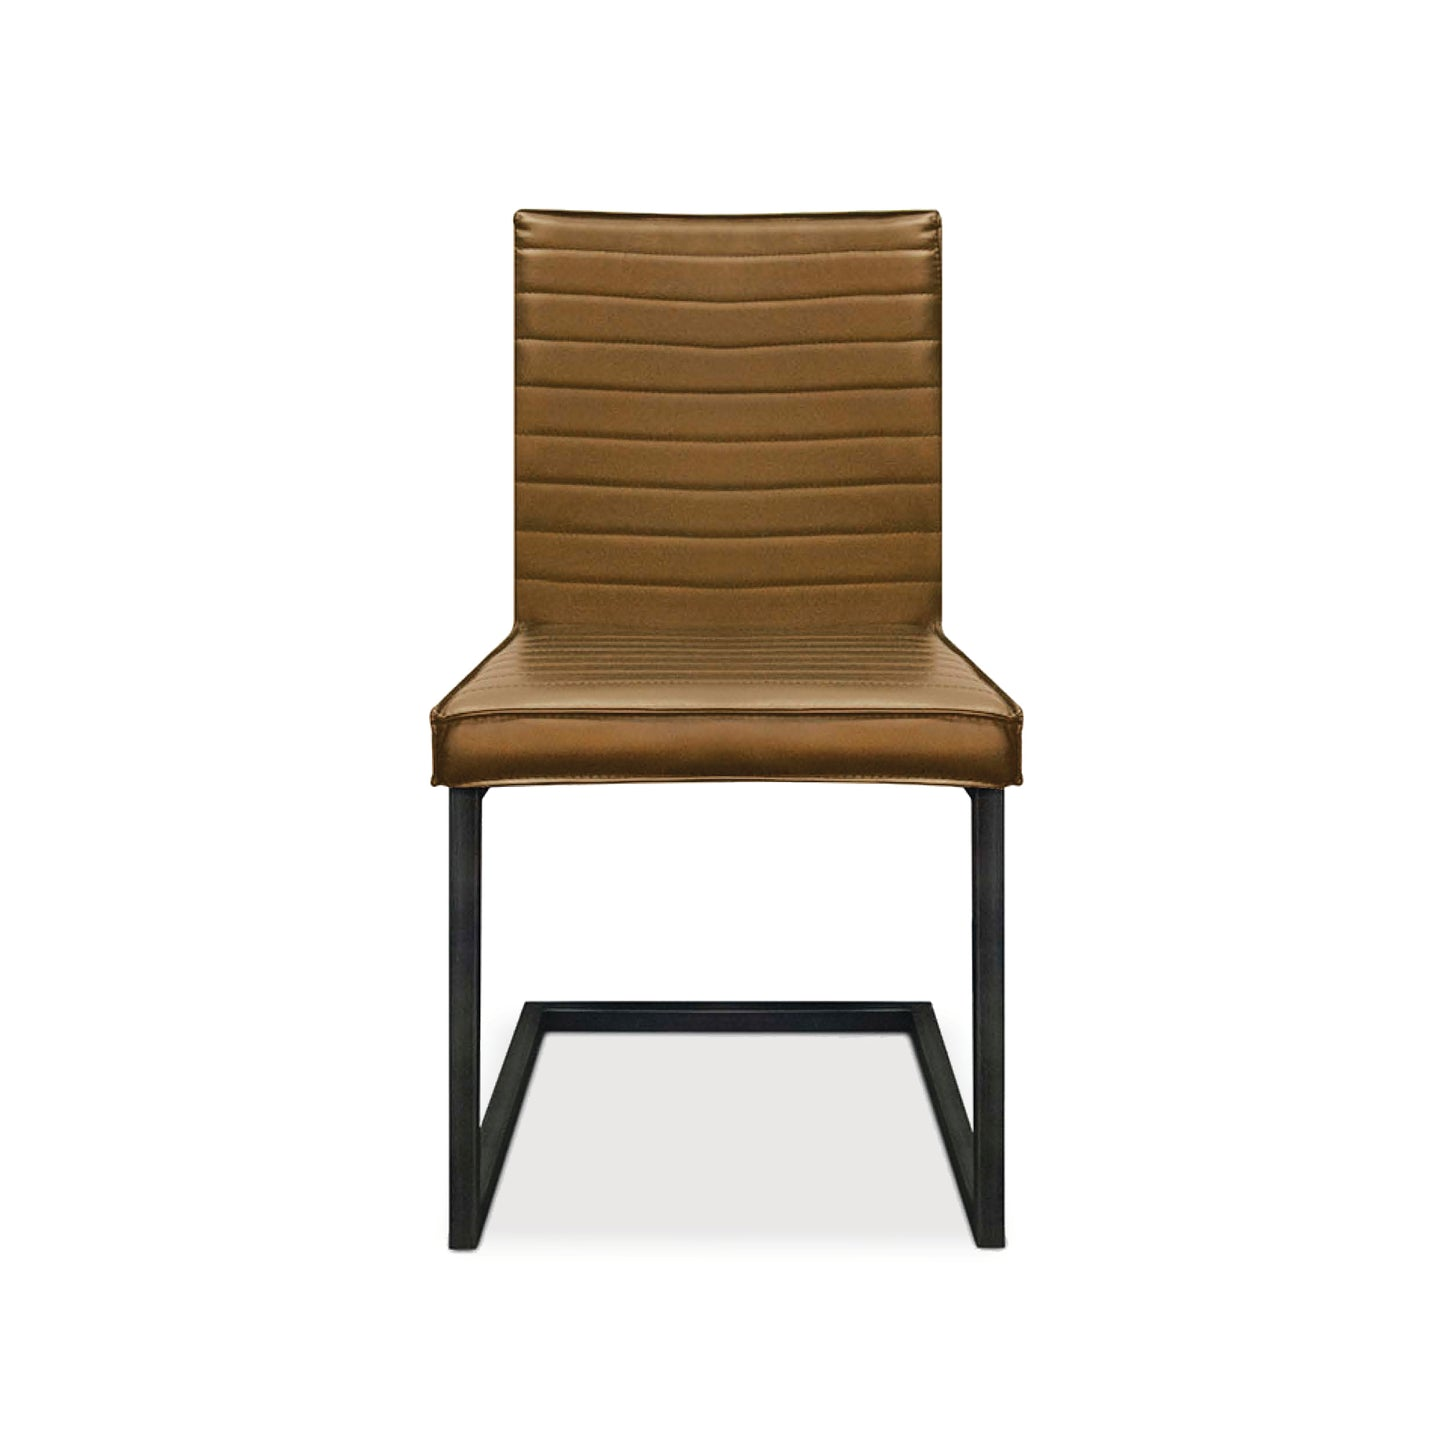 DRAKE SIDE CHAIR - COGNAC (2 PER BOX)